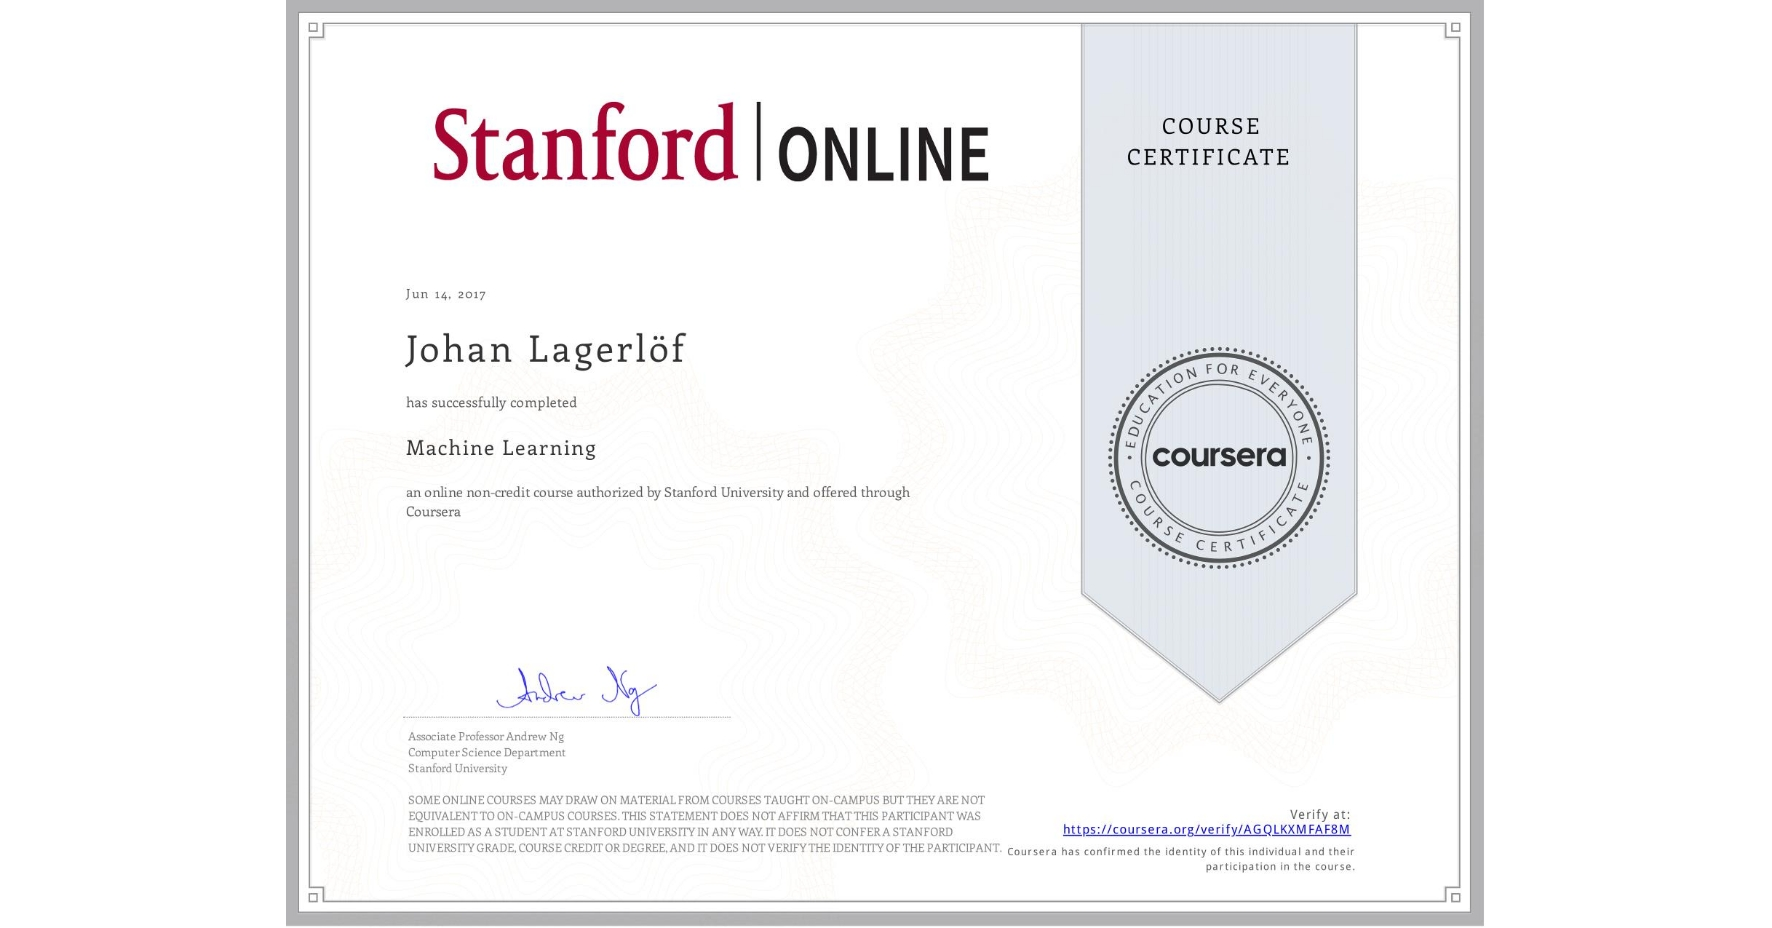 View certificate for Johan Lagerlöf, Machine Learning, an online non-credit course authorized by Stanford University and offered through Coursera